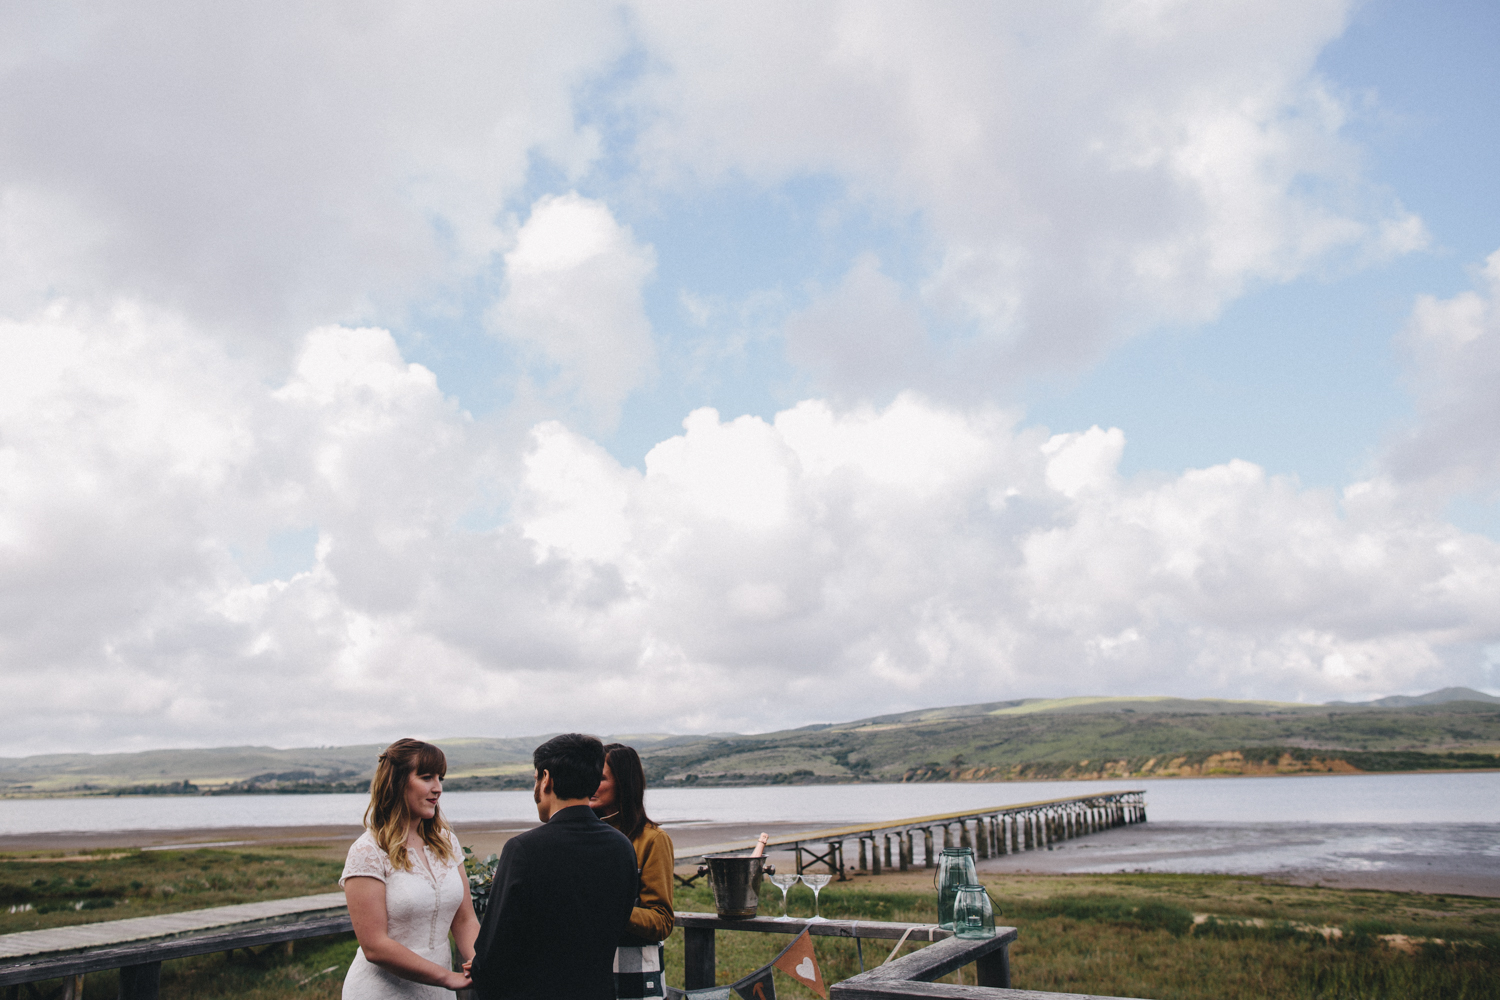 Point Reyes Inverness Wedding Photographer Rachelle Derouin-40.jpg